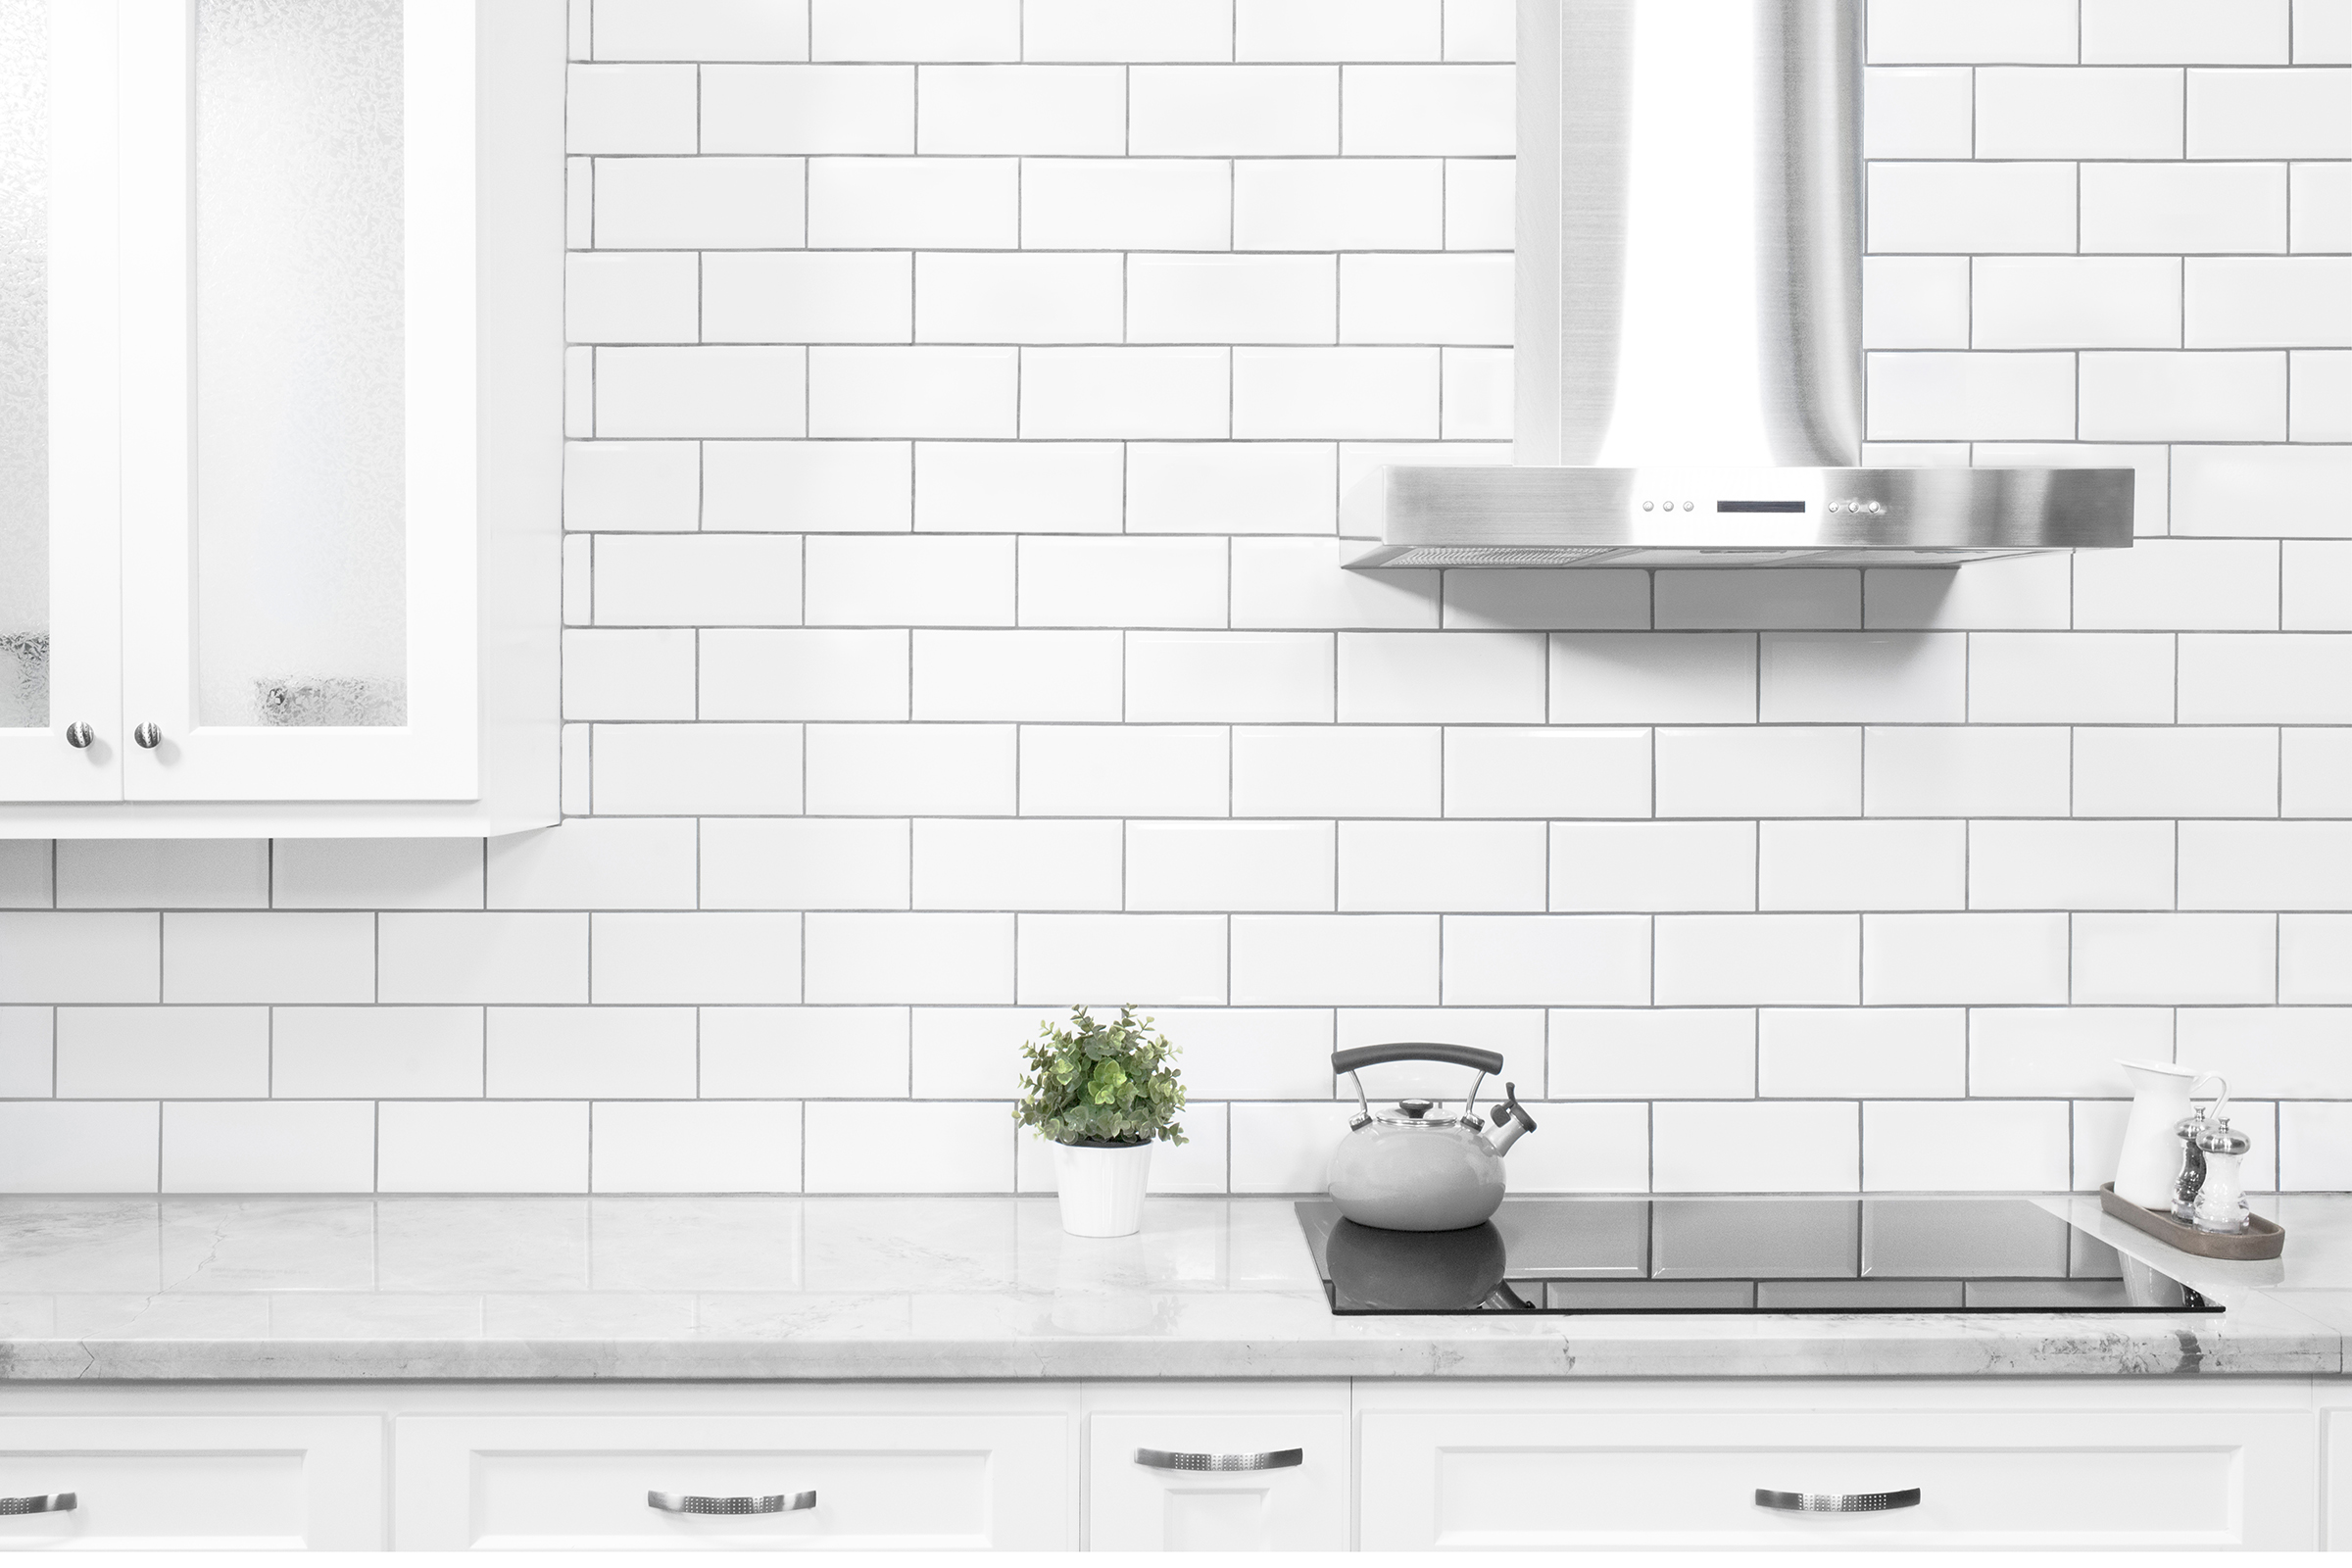 Pretty 1950S Floor Tiles Thin 1X2 Subway Tile Square 4 Inch Tile Backsplash 4 Tile Patterns For Floors Youthful 4X4 Ceramic Tiles FreshAlmond Subway Tile Why We Love Subway Tile